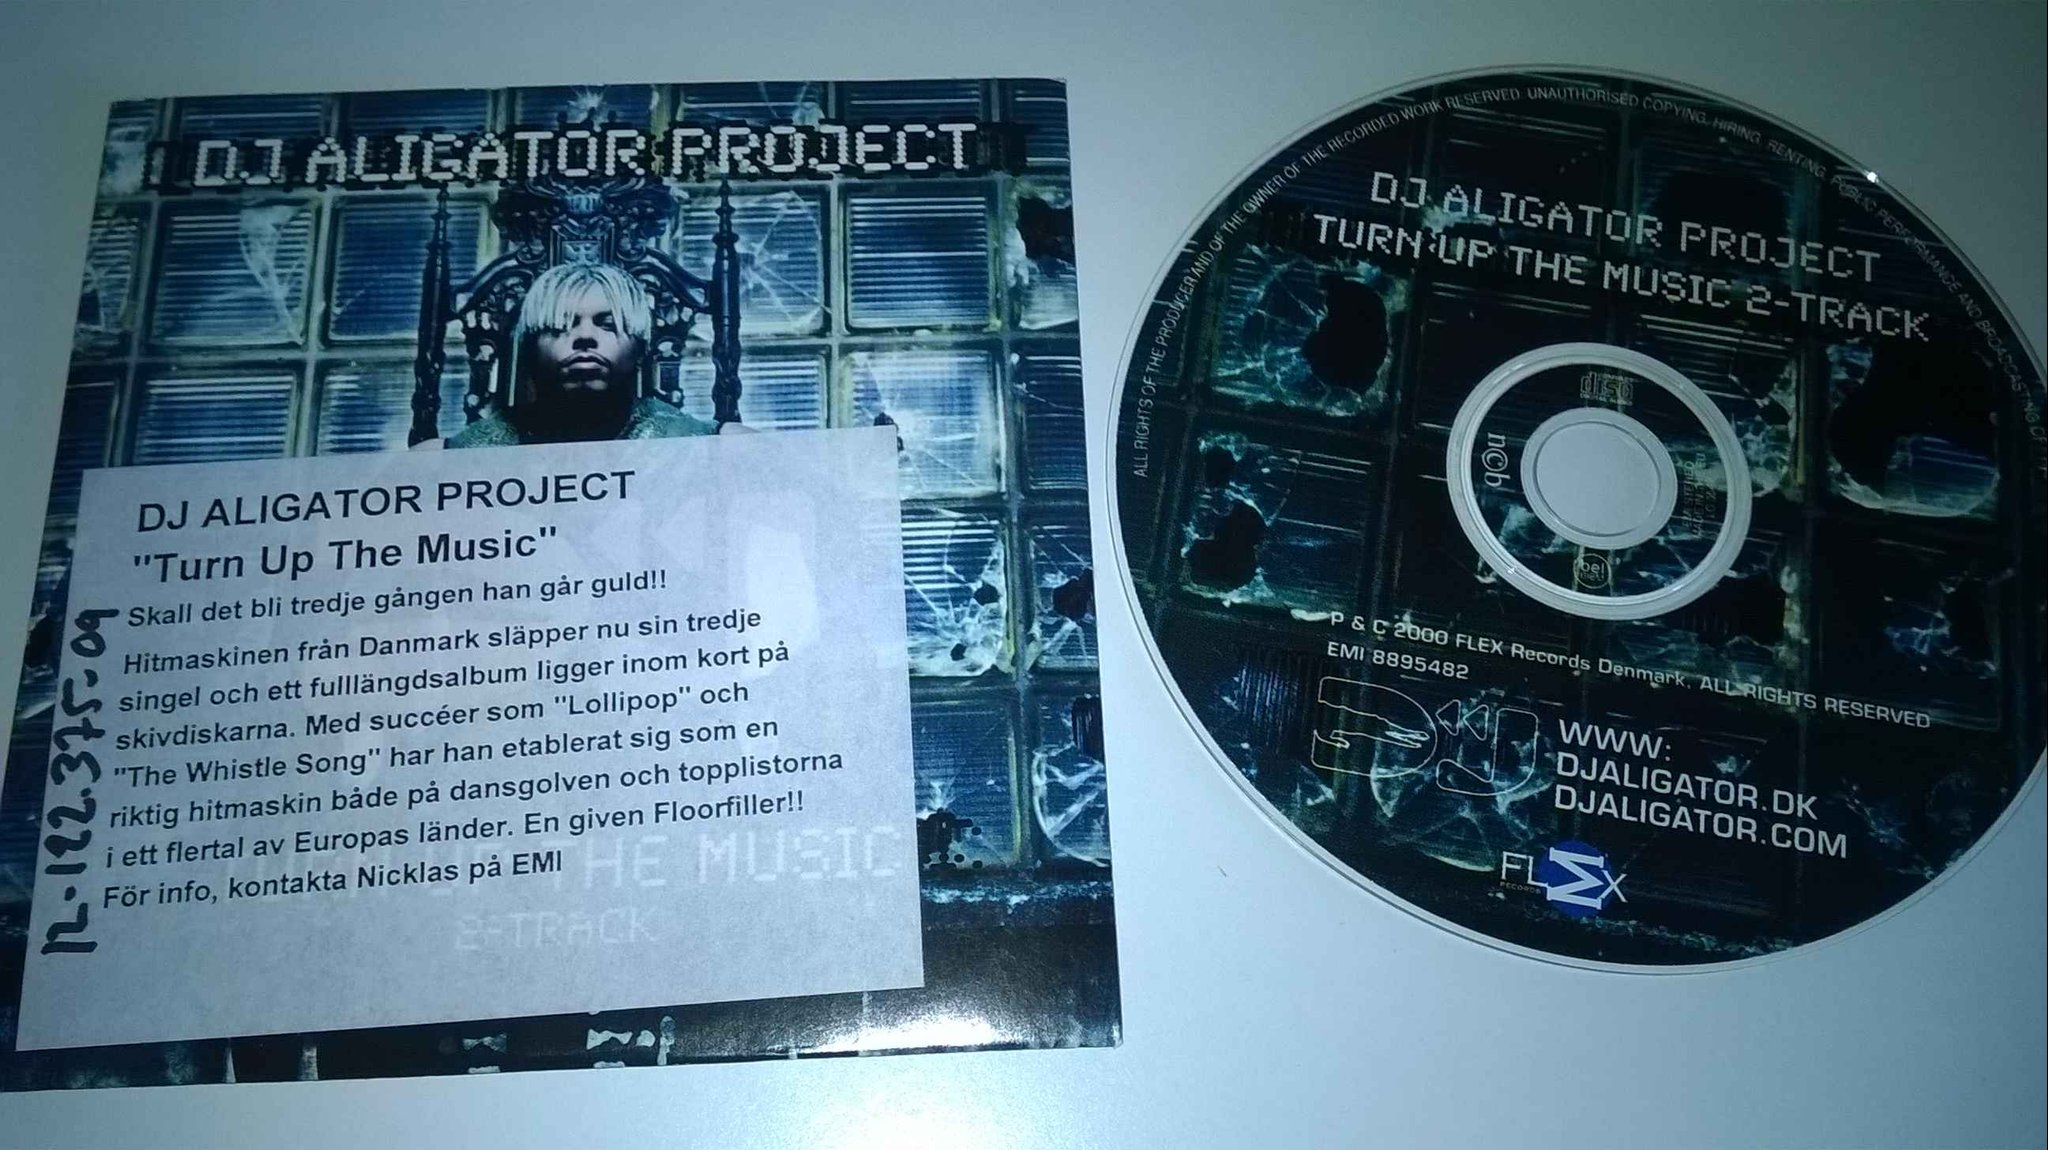 Dj Aligator Project - Turn up the music, single CD